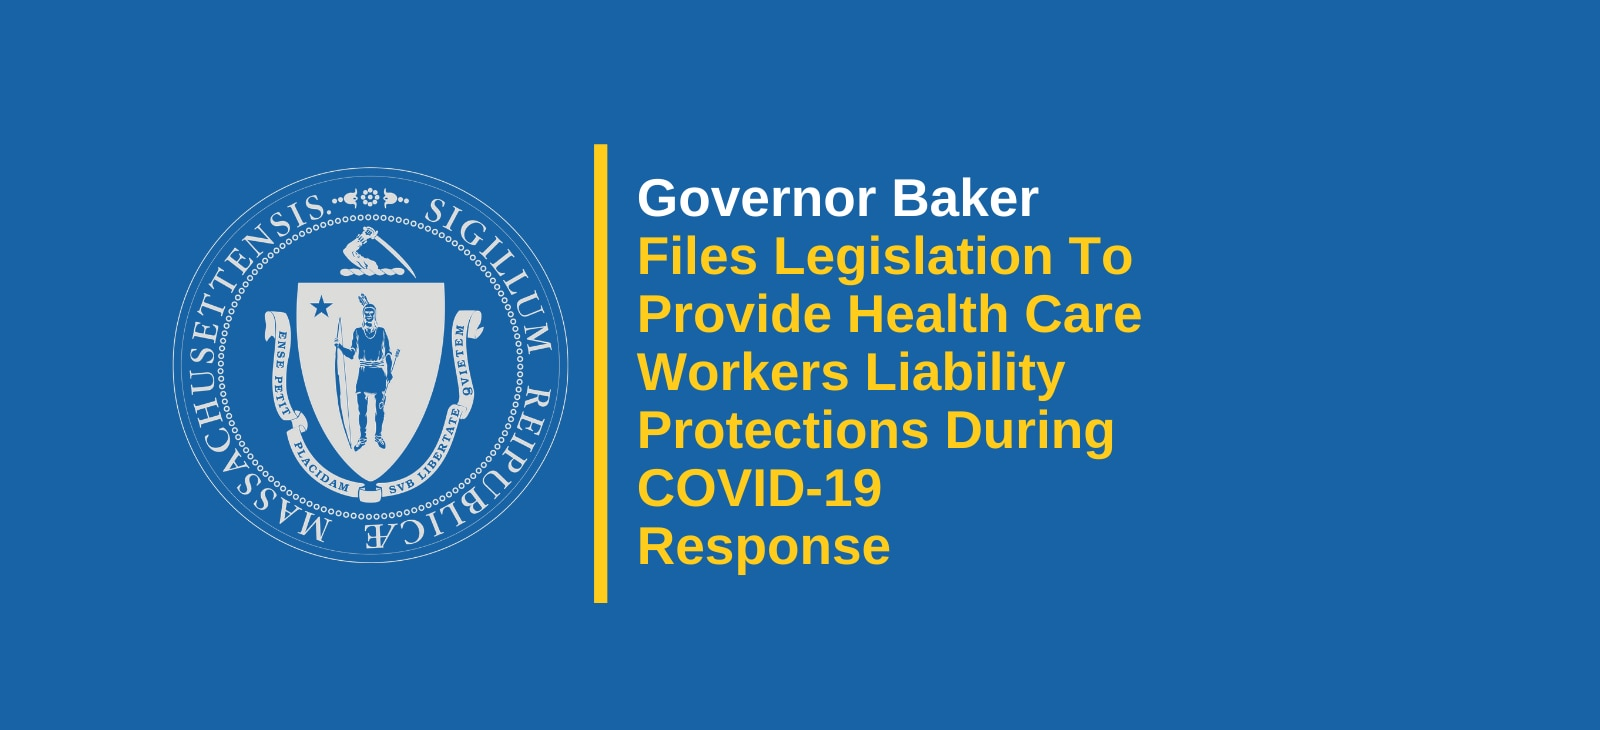 Governor Baker Files Legislation To Provide Health Care Workers Liability Protections During COVID-19 Response